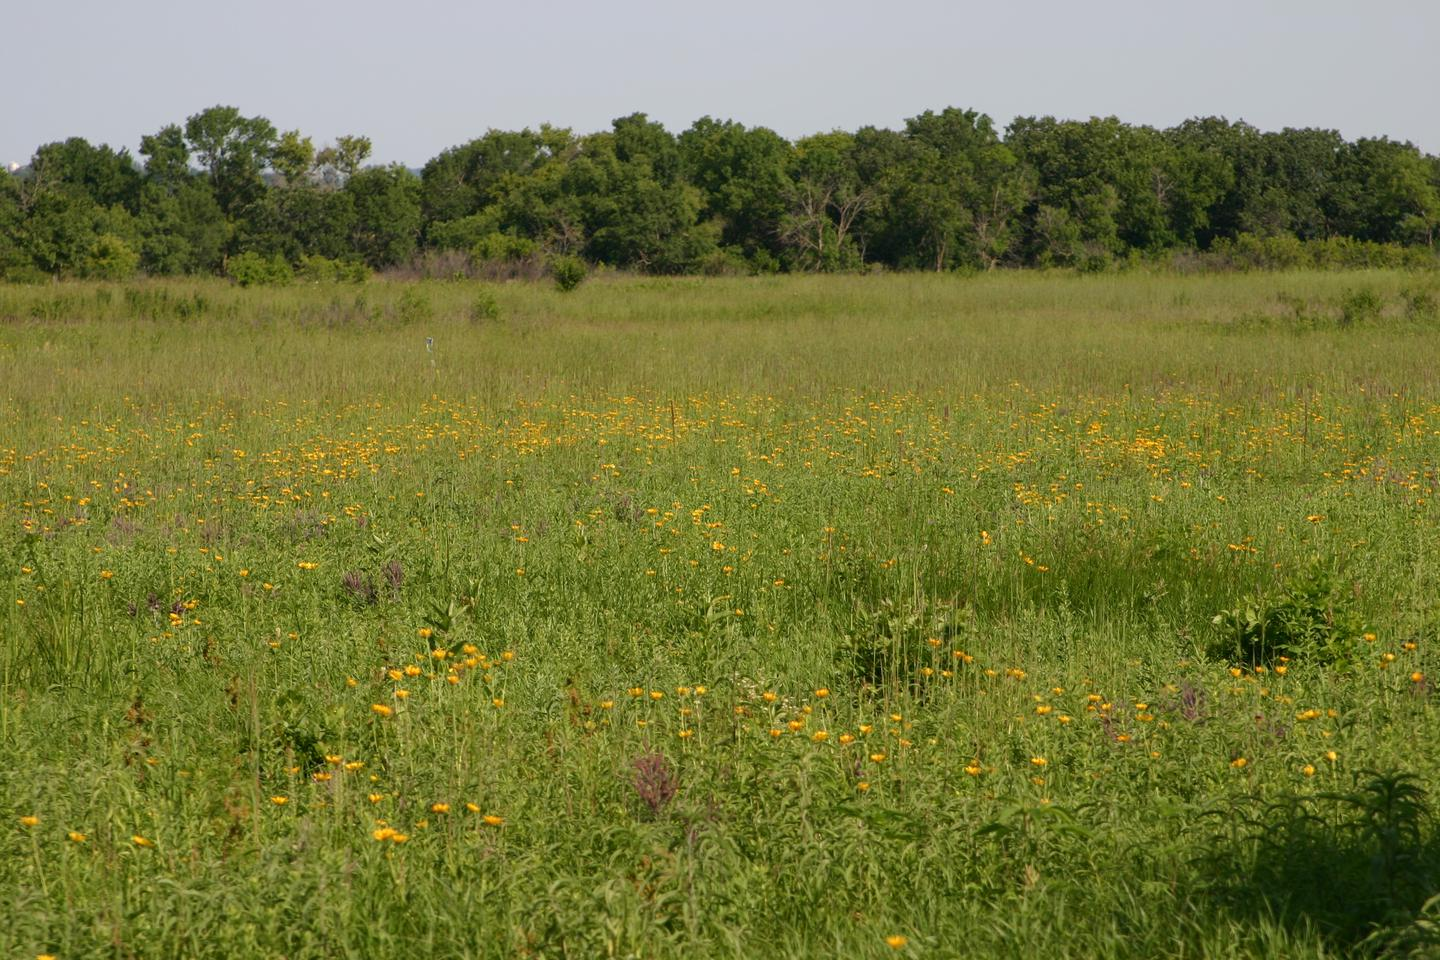 Interp_CircleTrail-PrairieFlowersGrass_7-2009View of Prairie Grasses and summer wildflowers, one of many scenic sites visitors can see from the Monument Circle Trail.